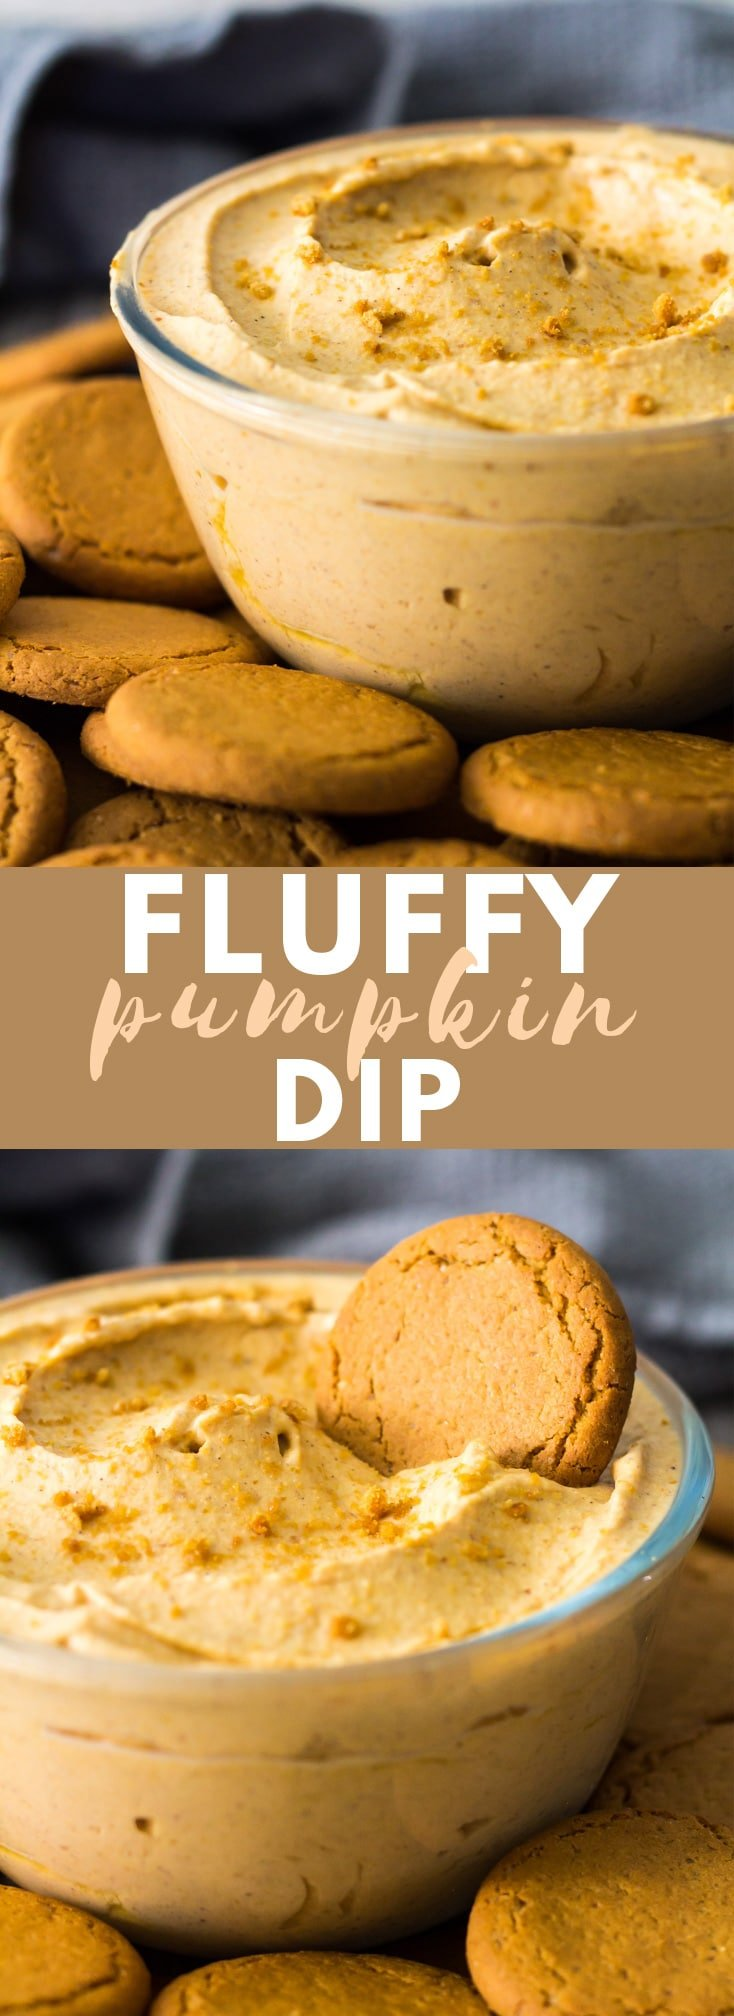 Fluffy Pumpkin Dip - Deliciously light and fluffy whipped pumpkin dip that is loaded with warm spices. Perfect for serving at parties with apple slices, crackers, or cookies!